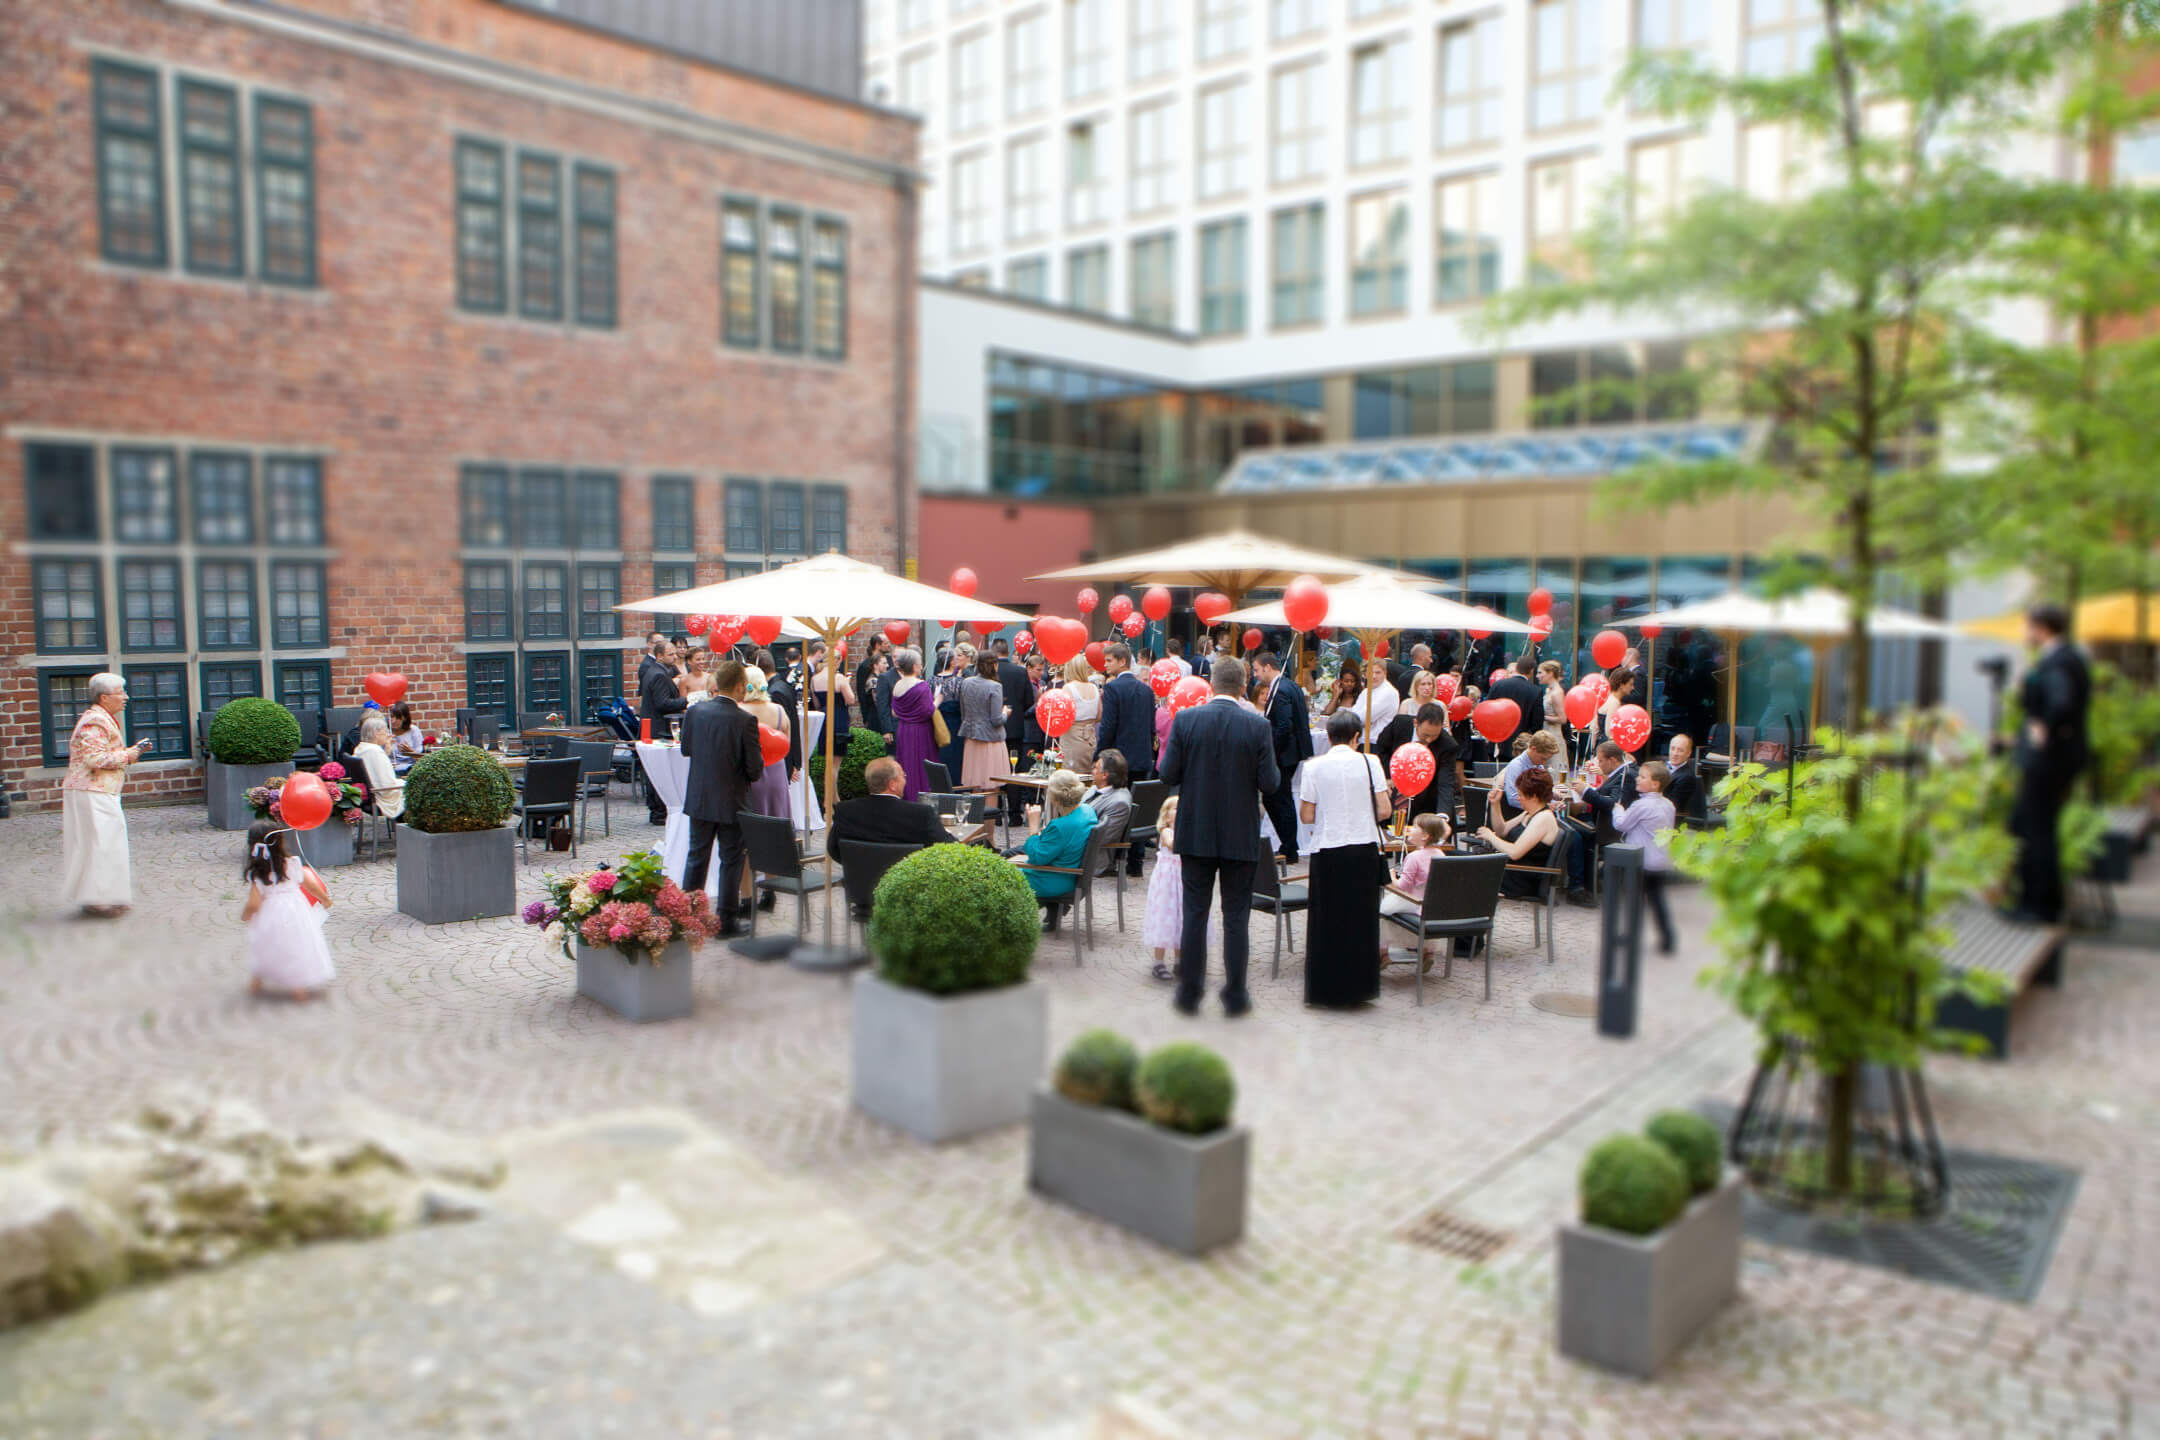 Wedding reception in the courtyard garden